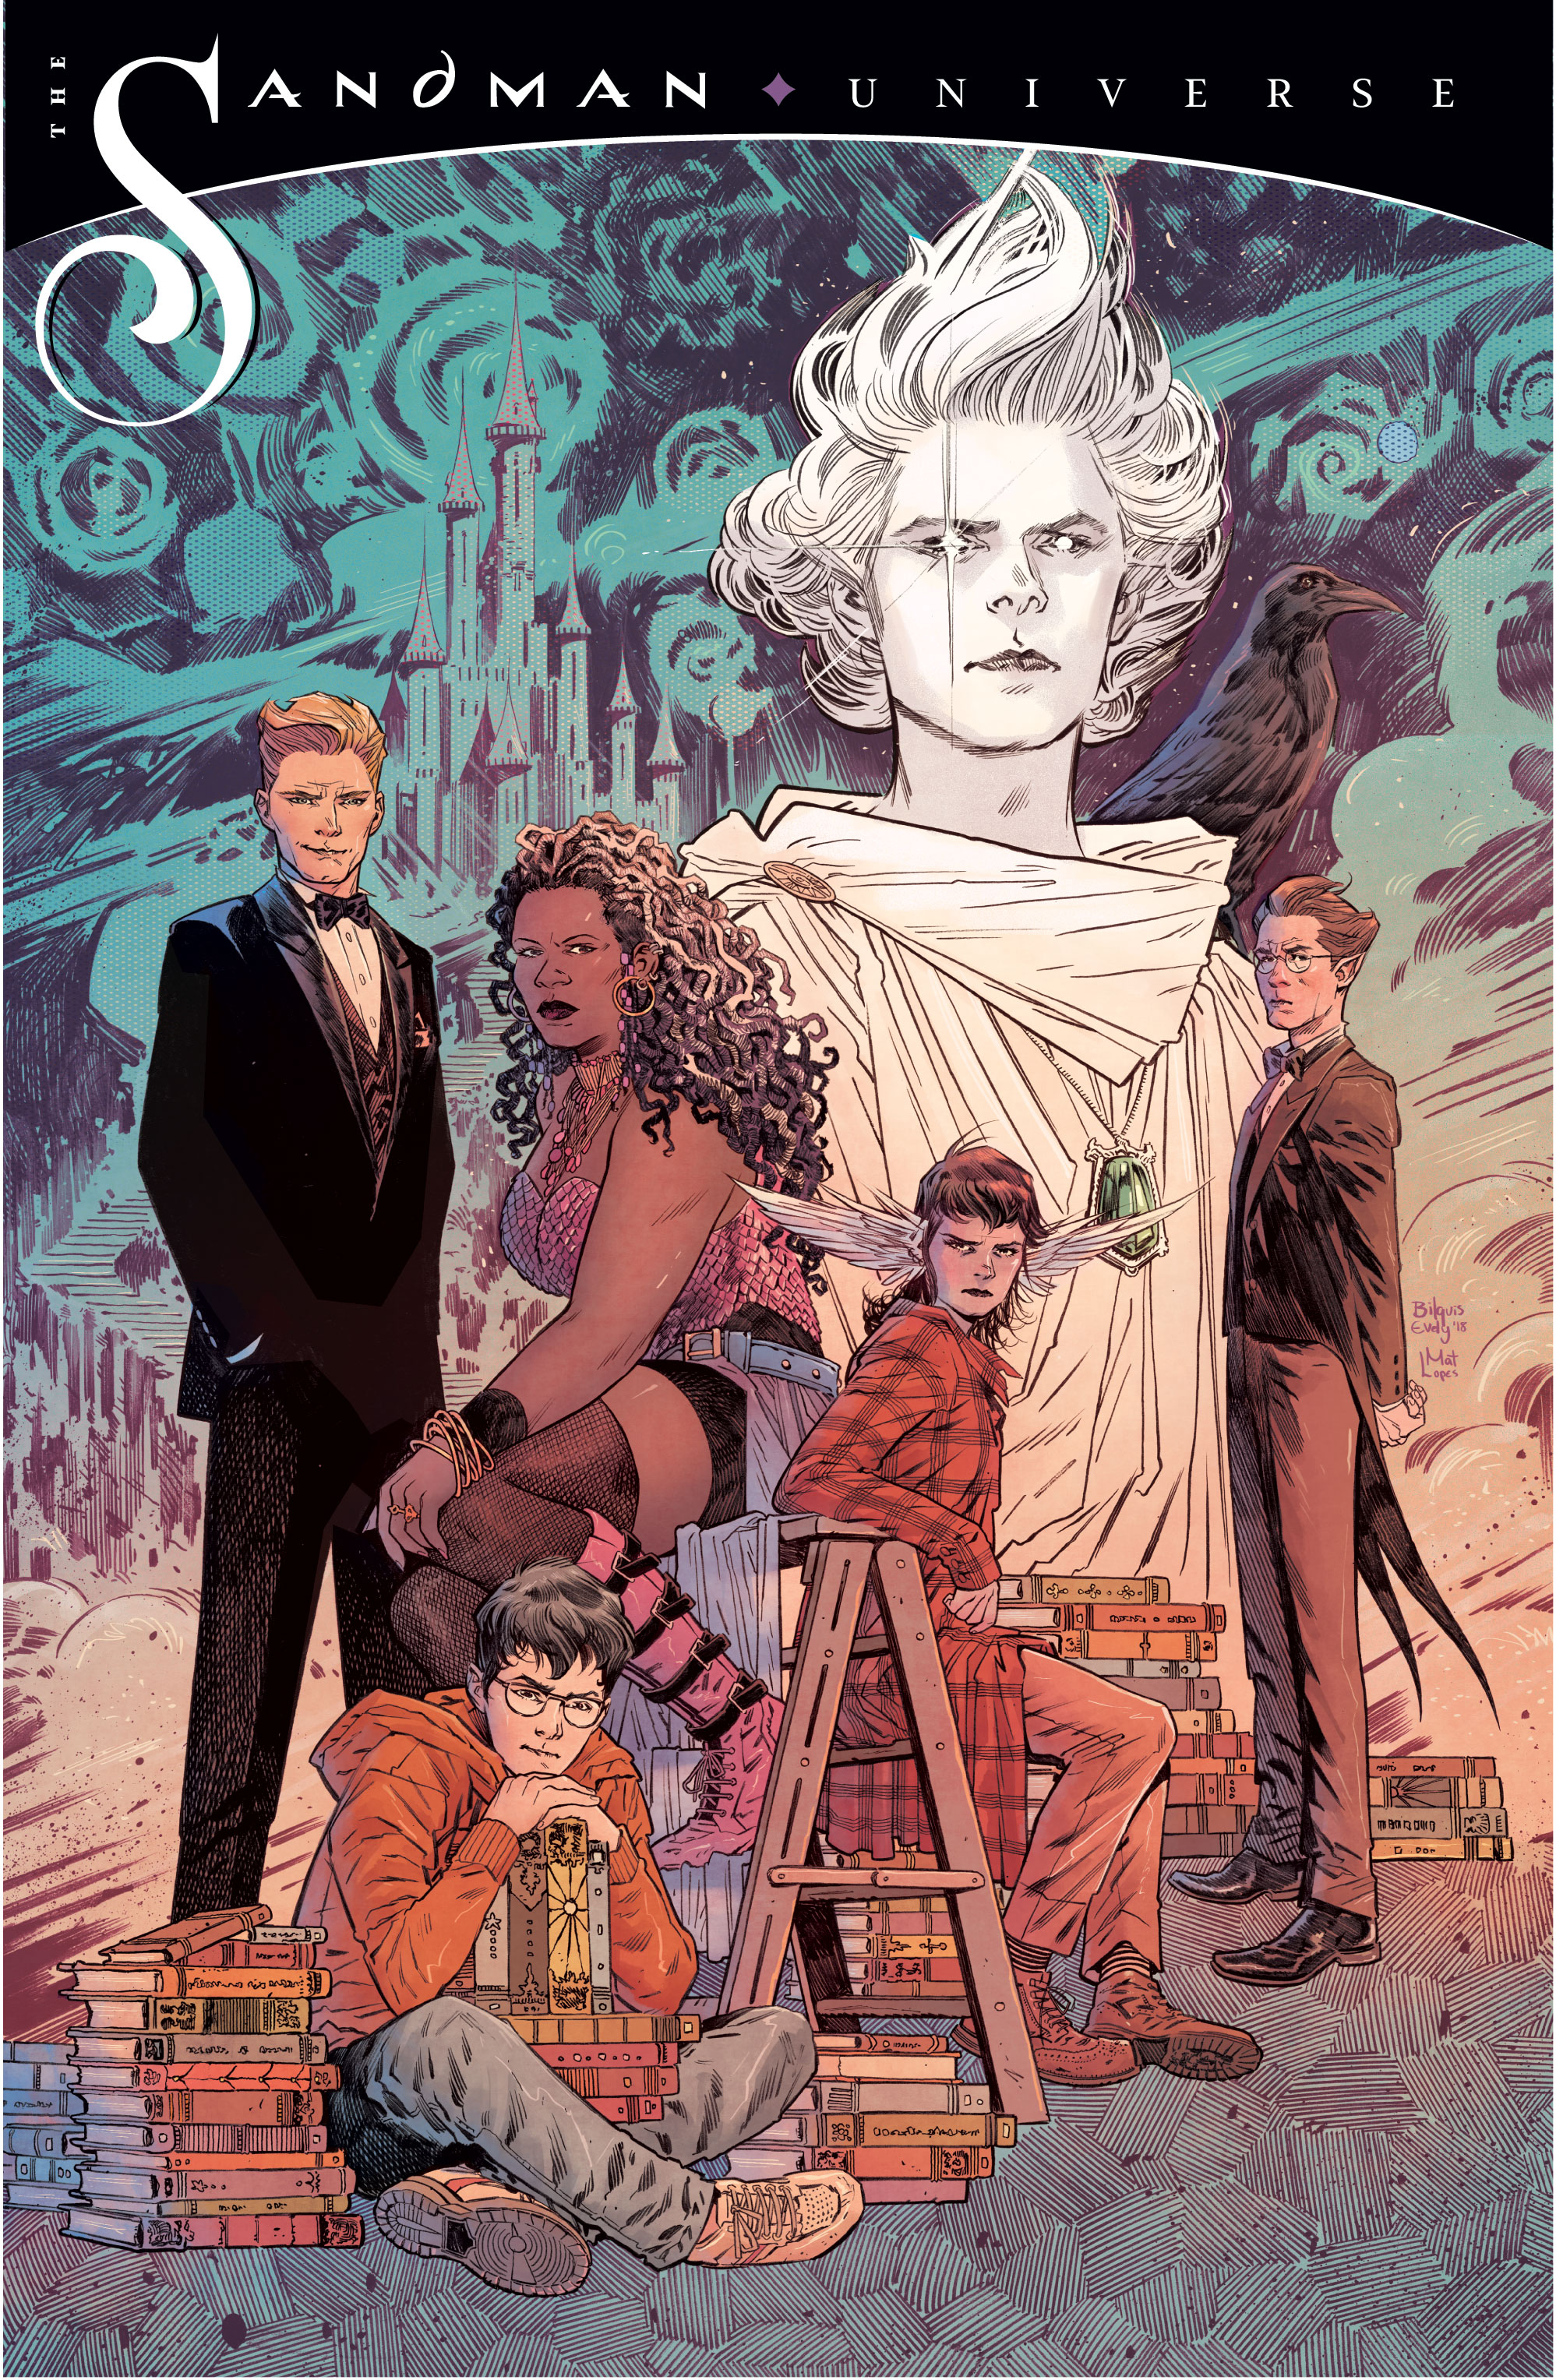 The Sandman Universe_promo by Bilquis Evely